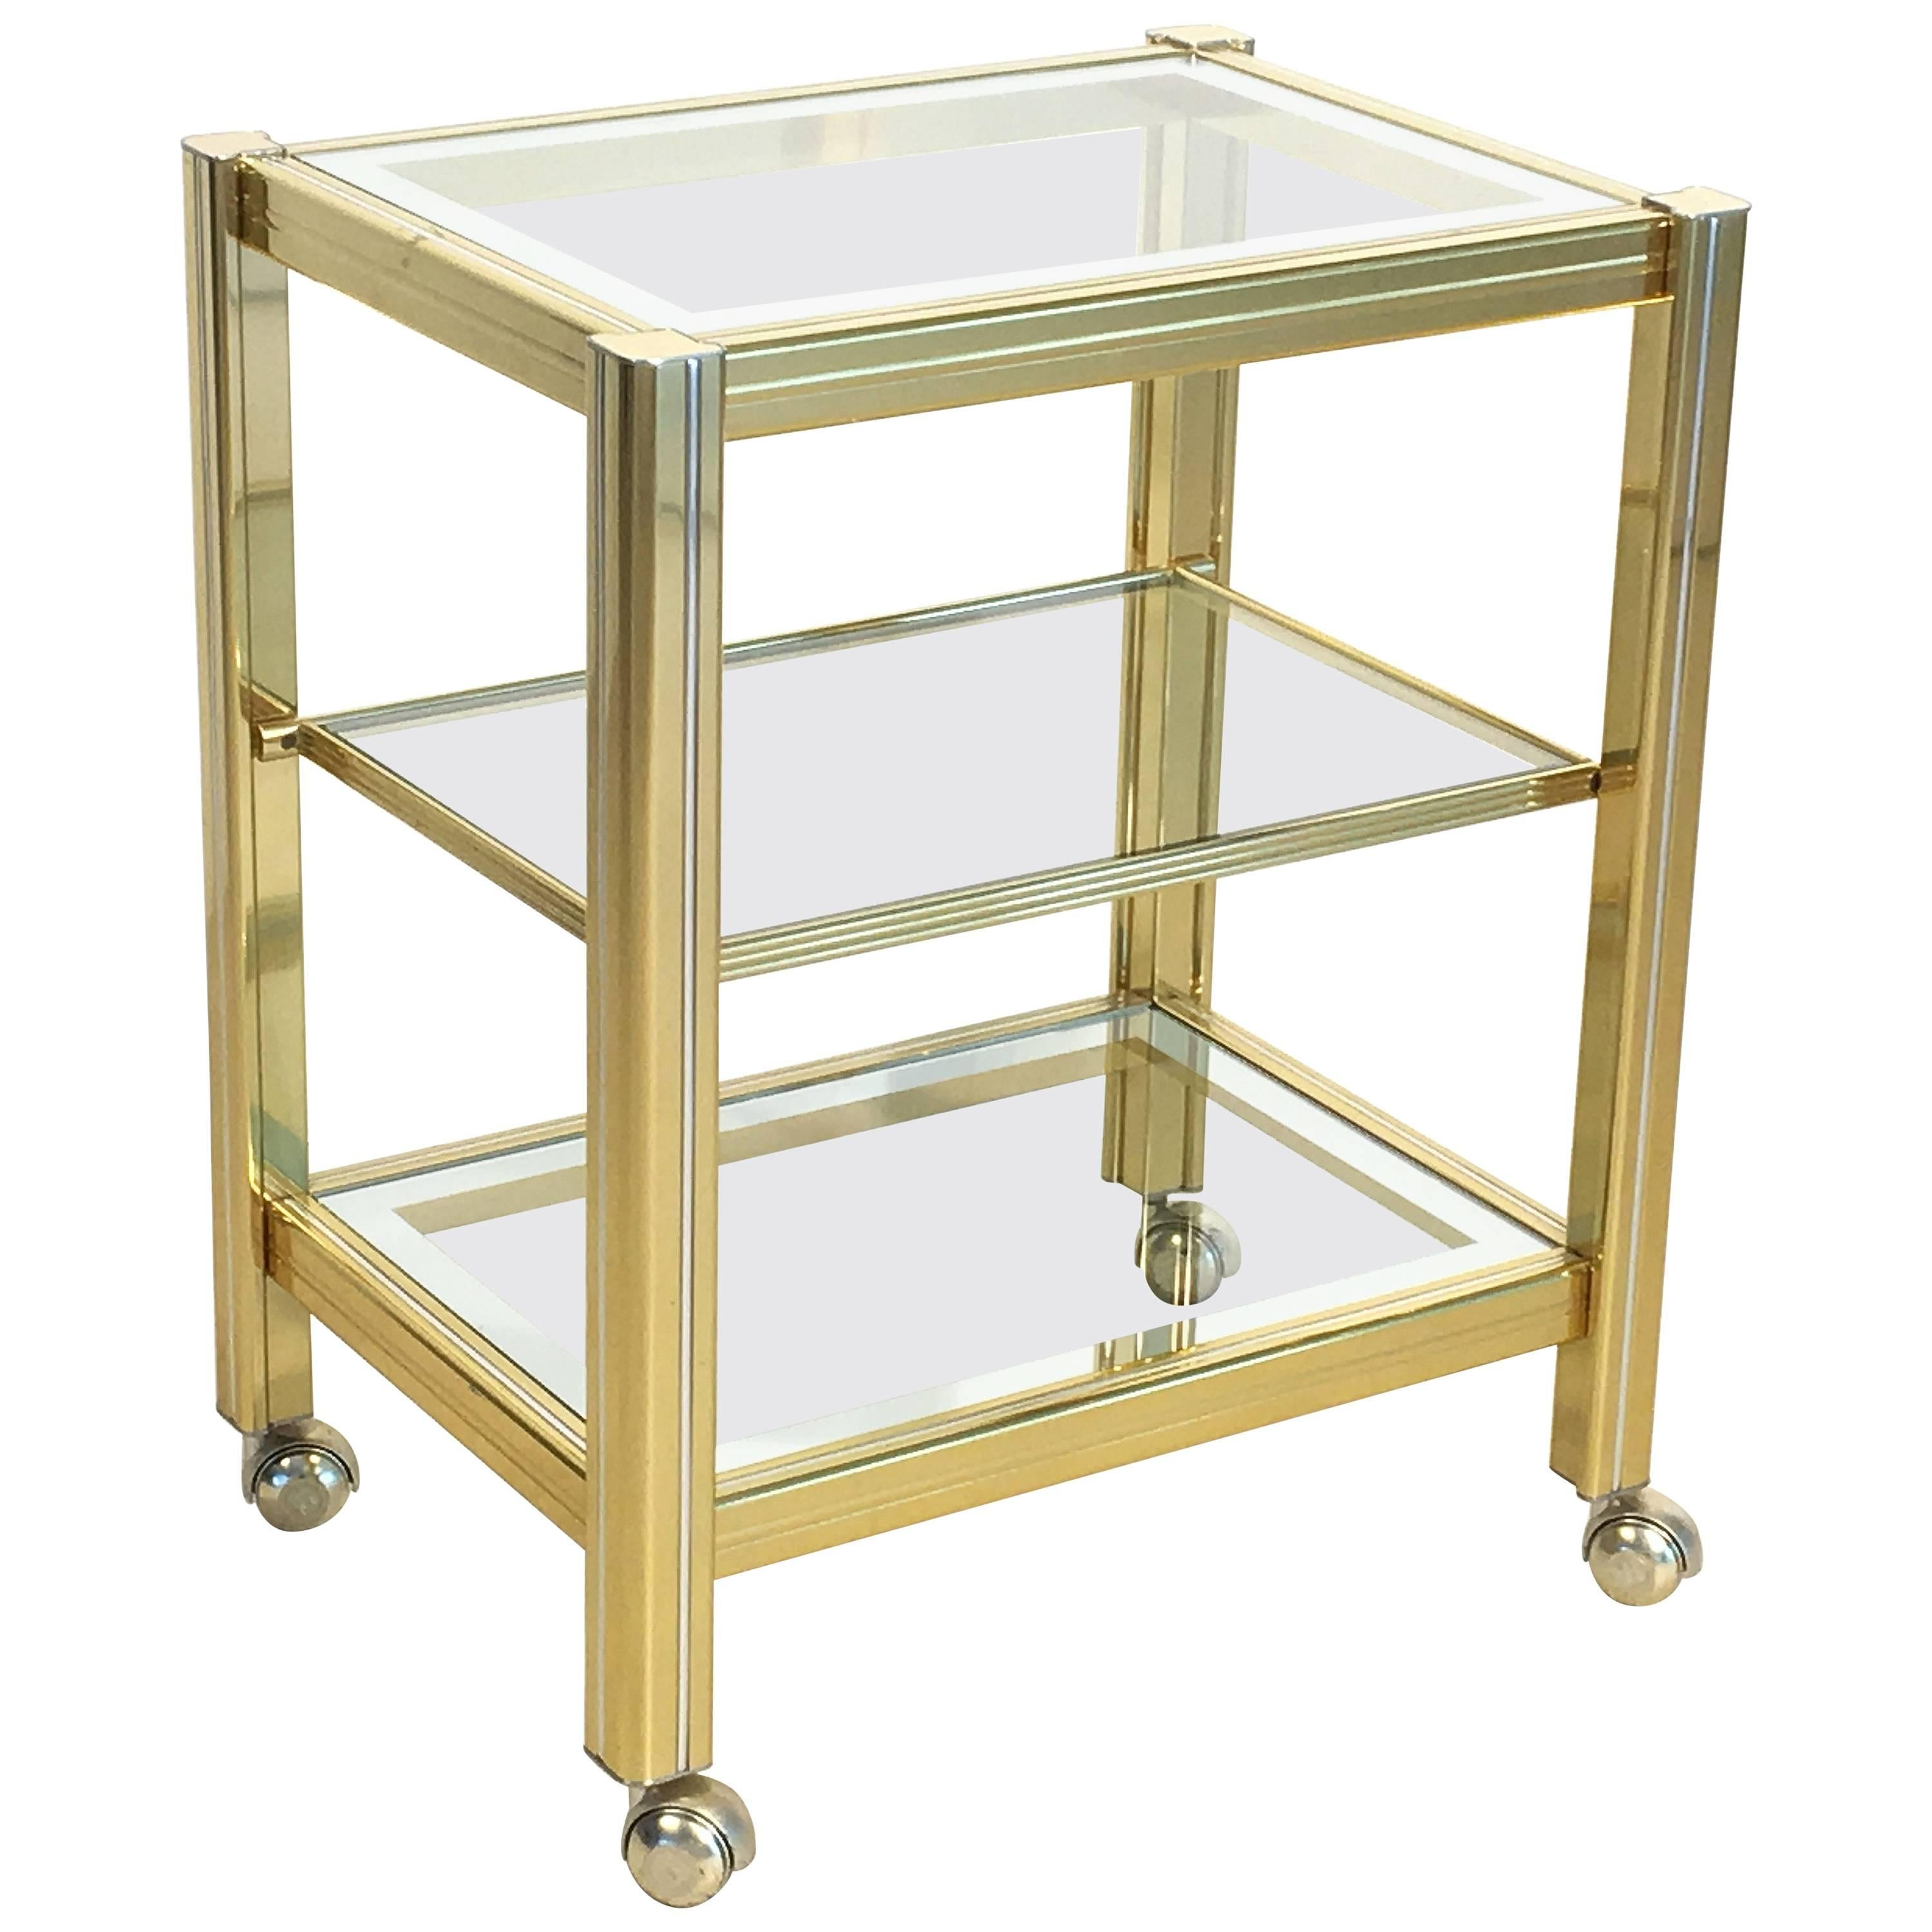 Italian Drinks Cart Trolley or Bar Cart of Brass and Glass